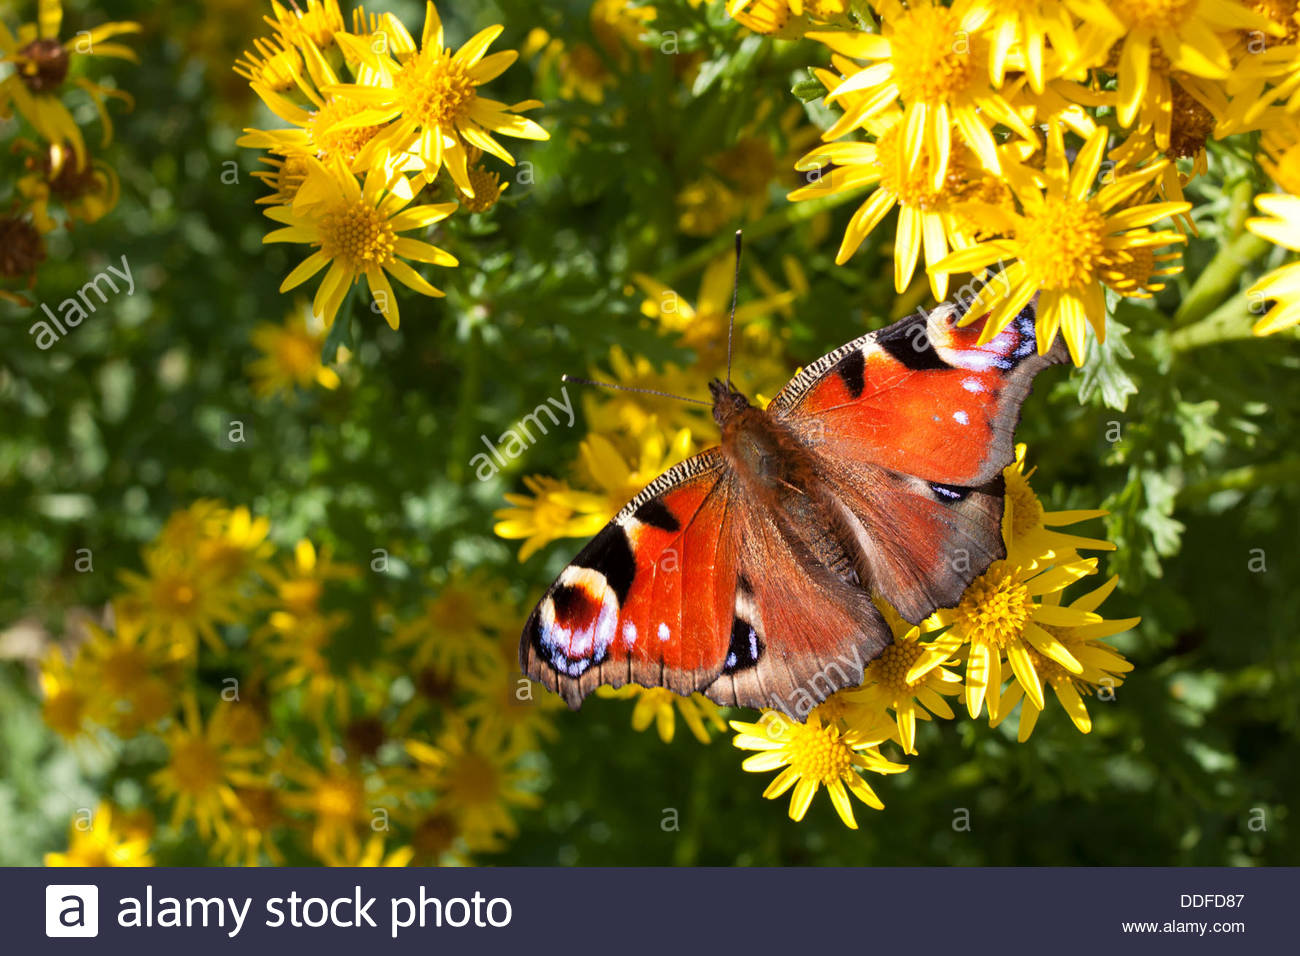 A Peacock Butterfly (Inachis io) on Ragwort in Upper Teesdale. North Pennine Hills, North Riding. September in Yorkshire - Stock Image